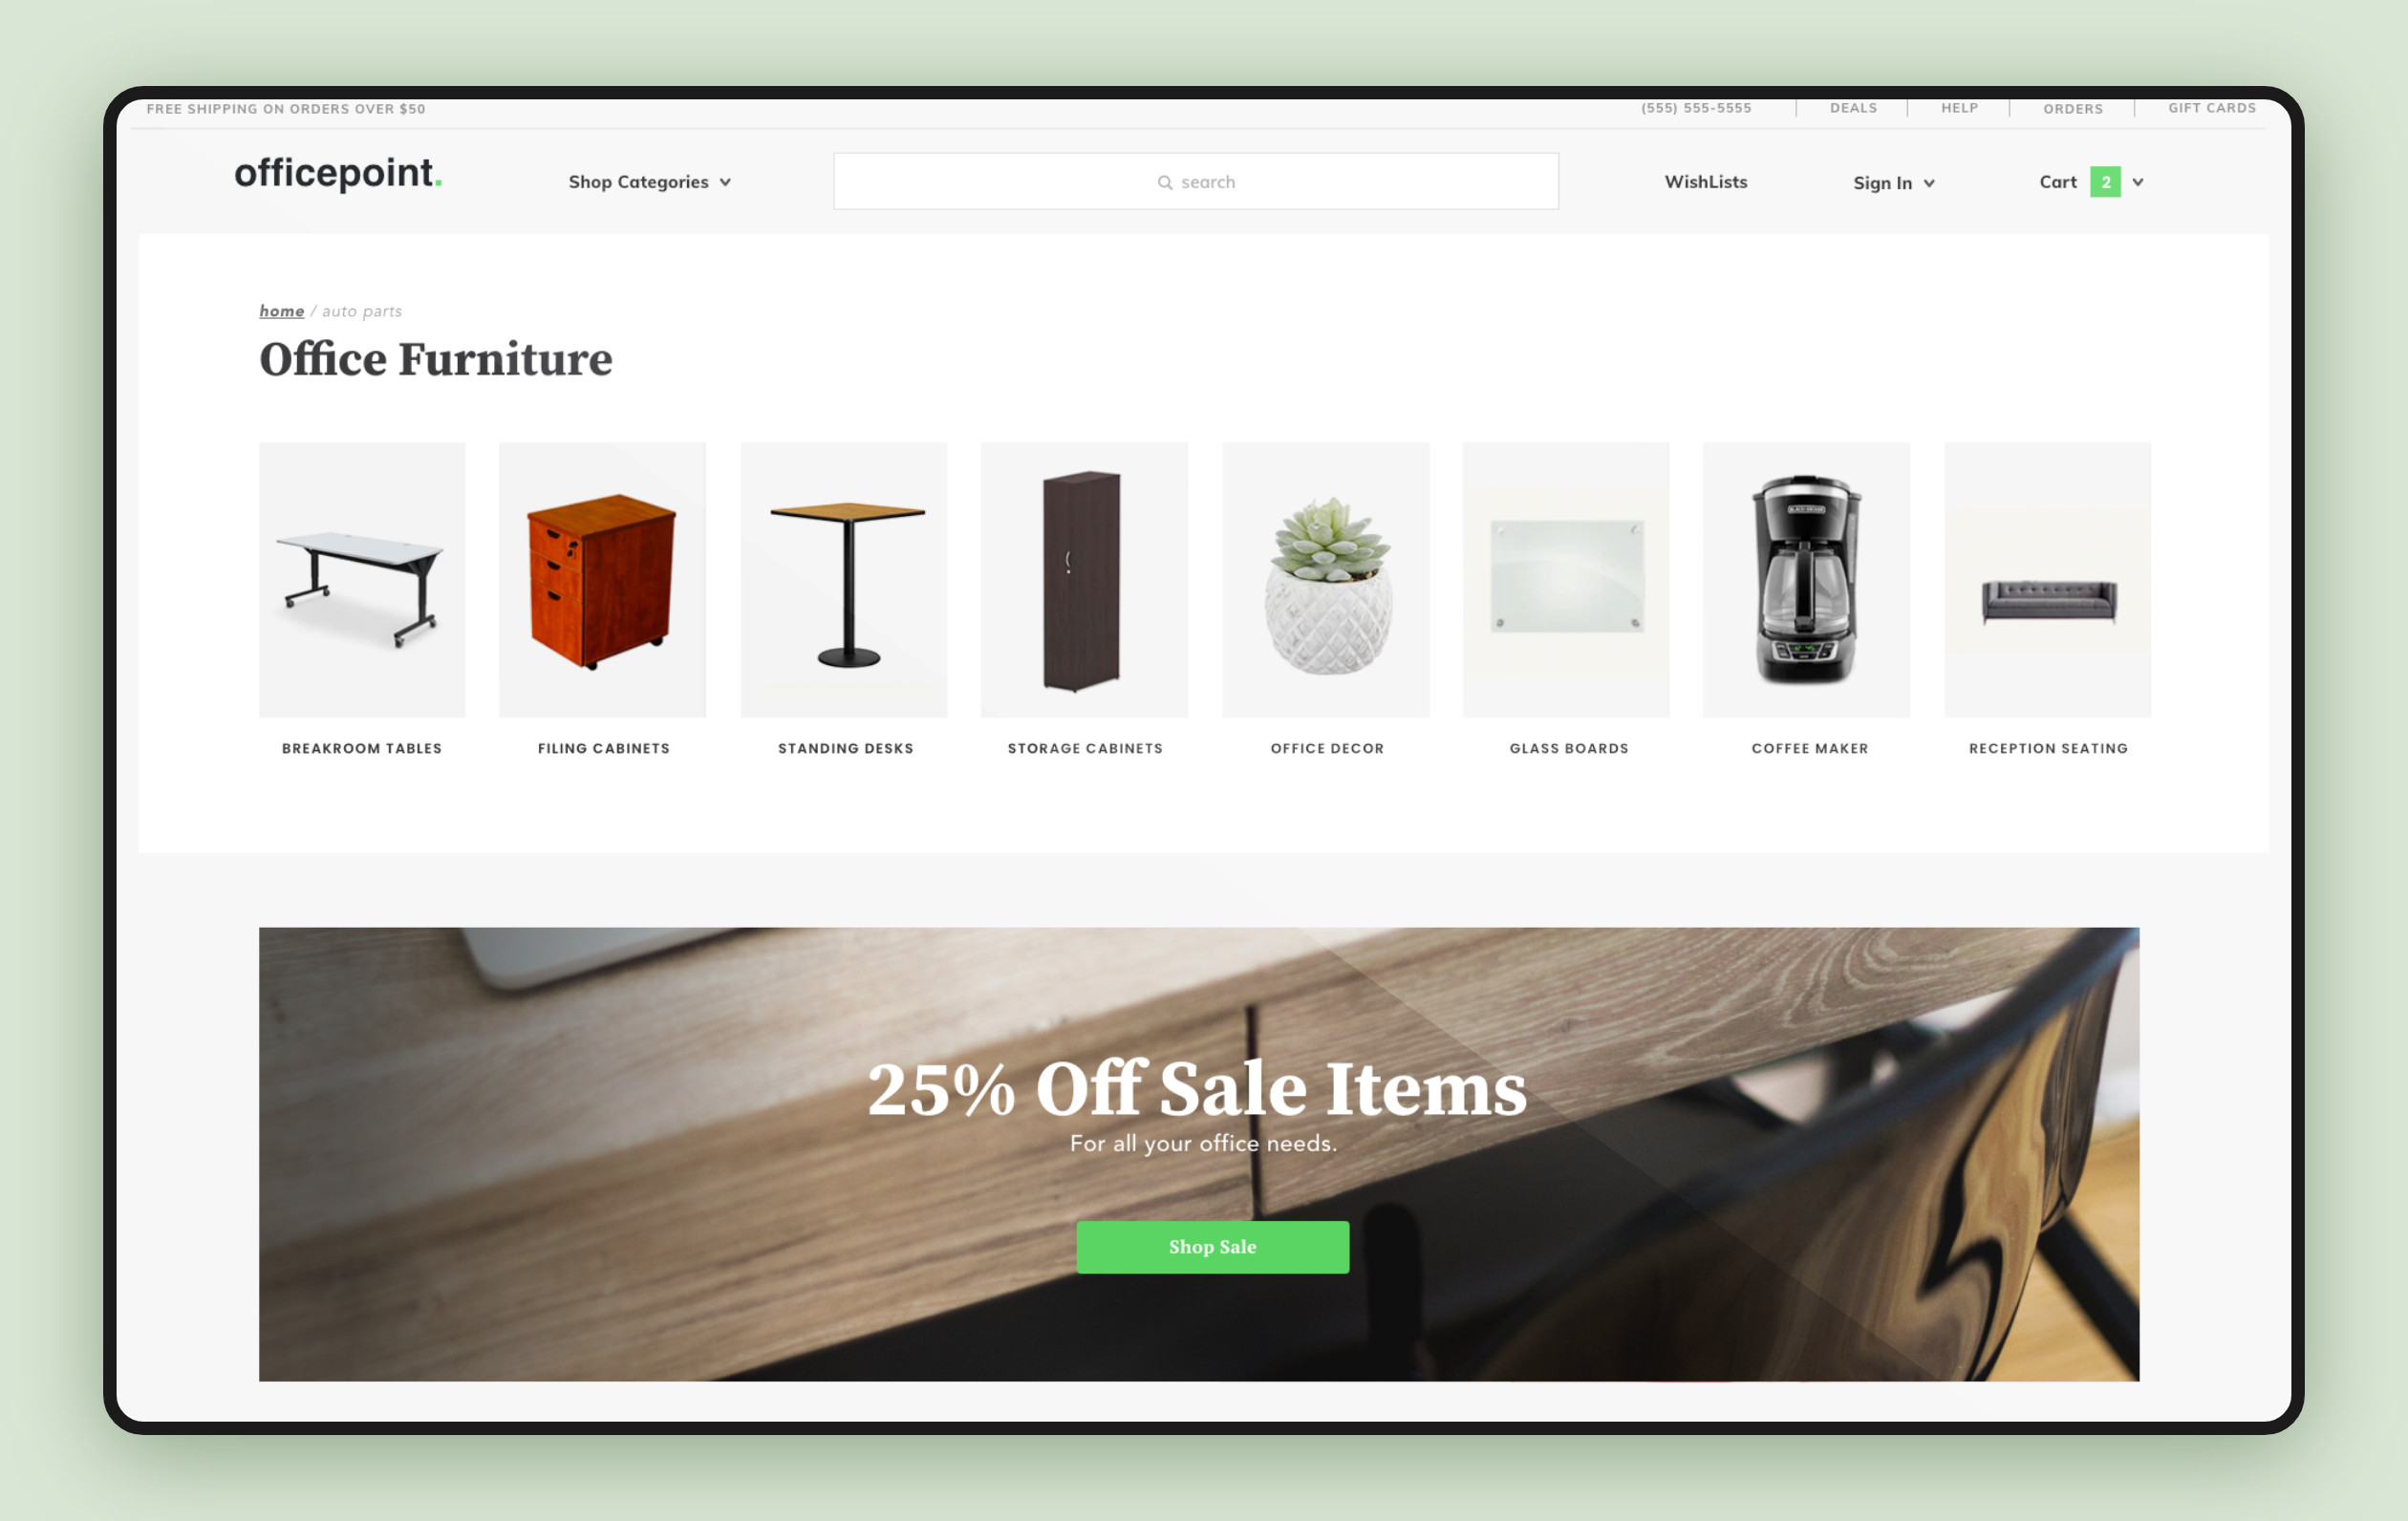 Online furniture website and customer experience